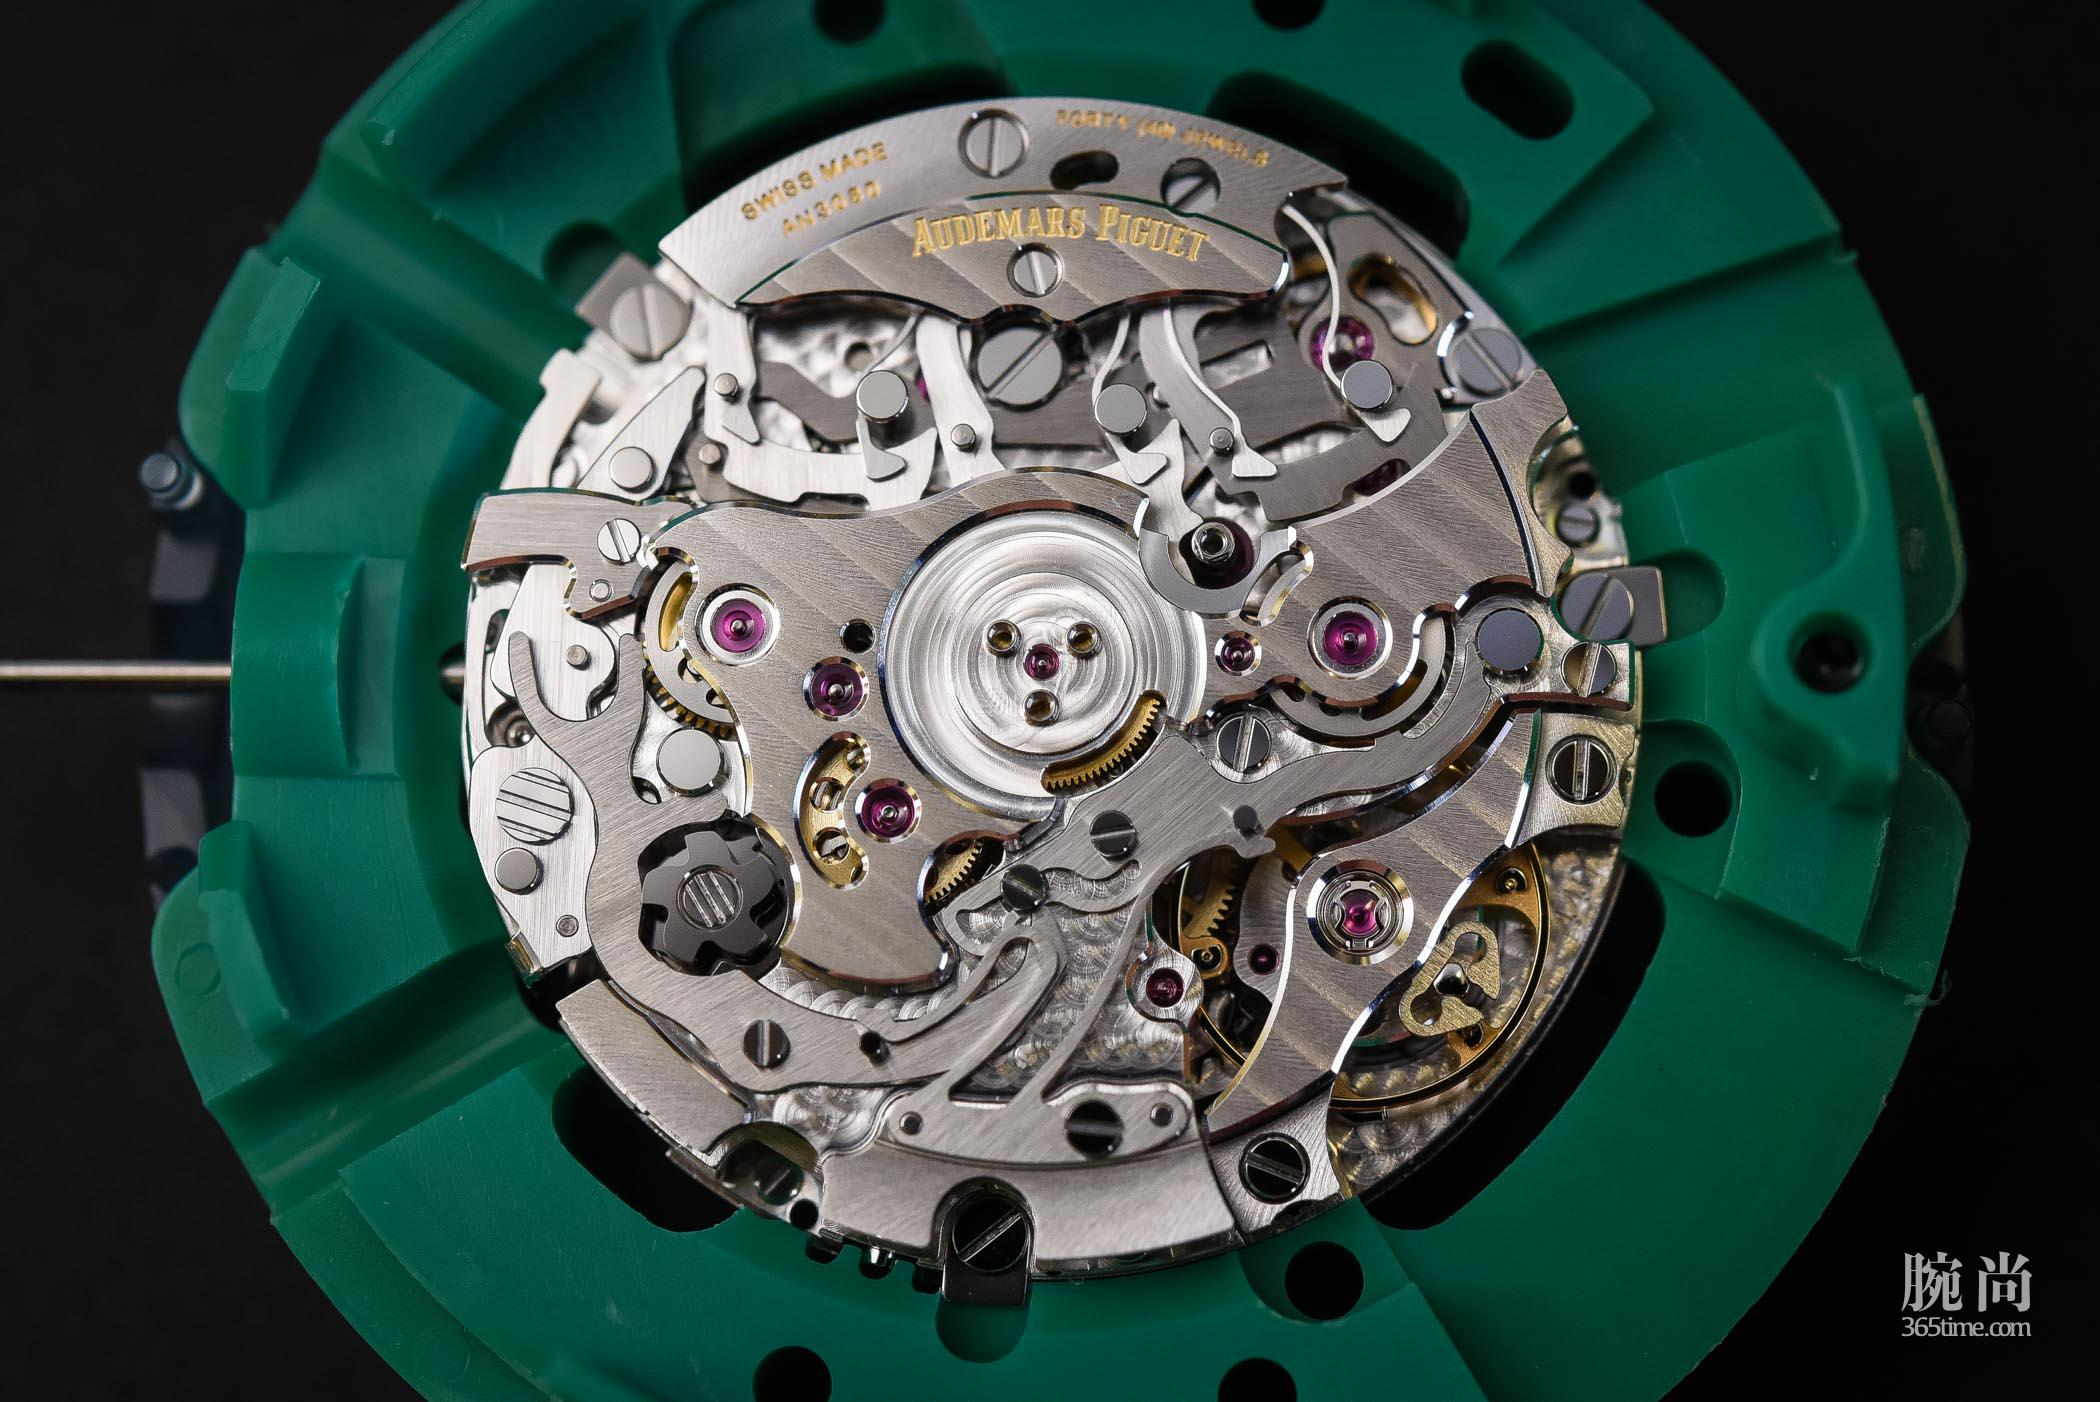 Audemars-Piguet-Calibre-4400-The-New-In-House-Integrated-Chronograph-Code-11.59-2.jpg